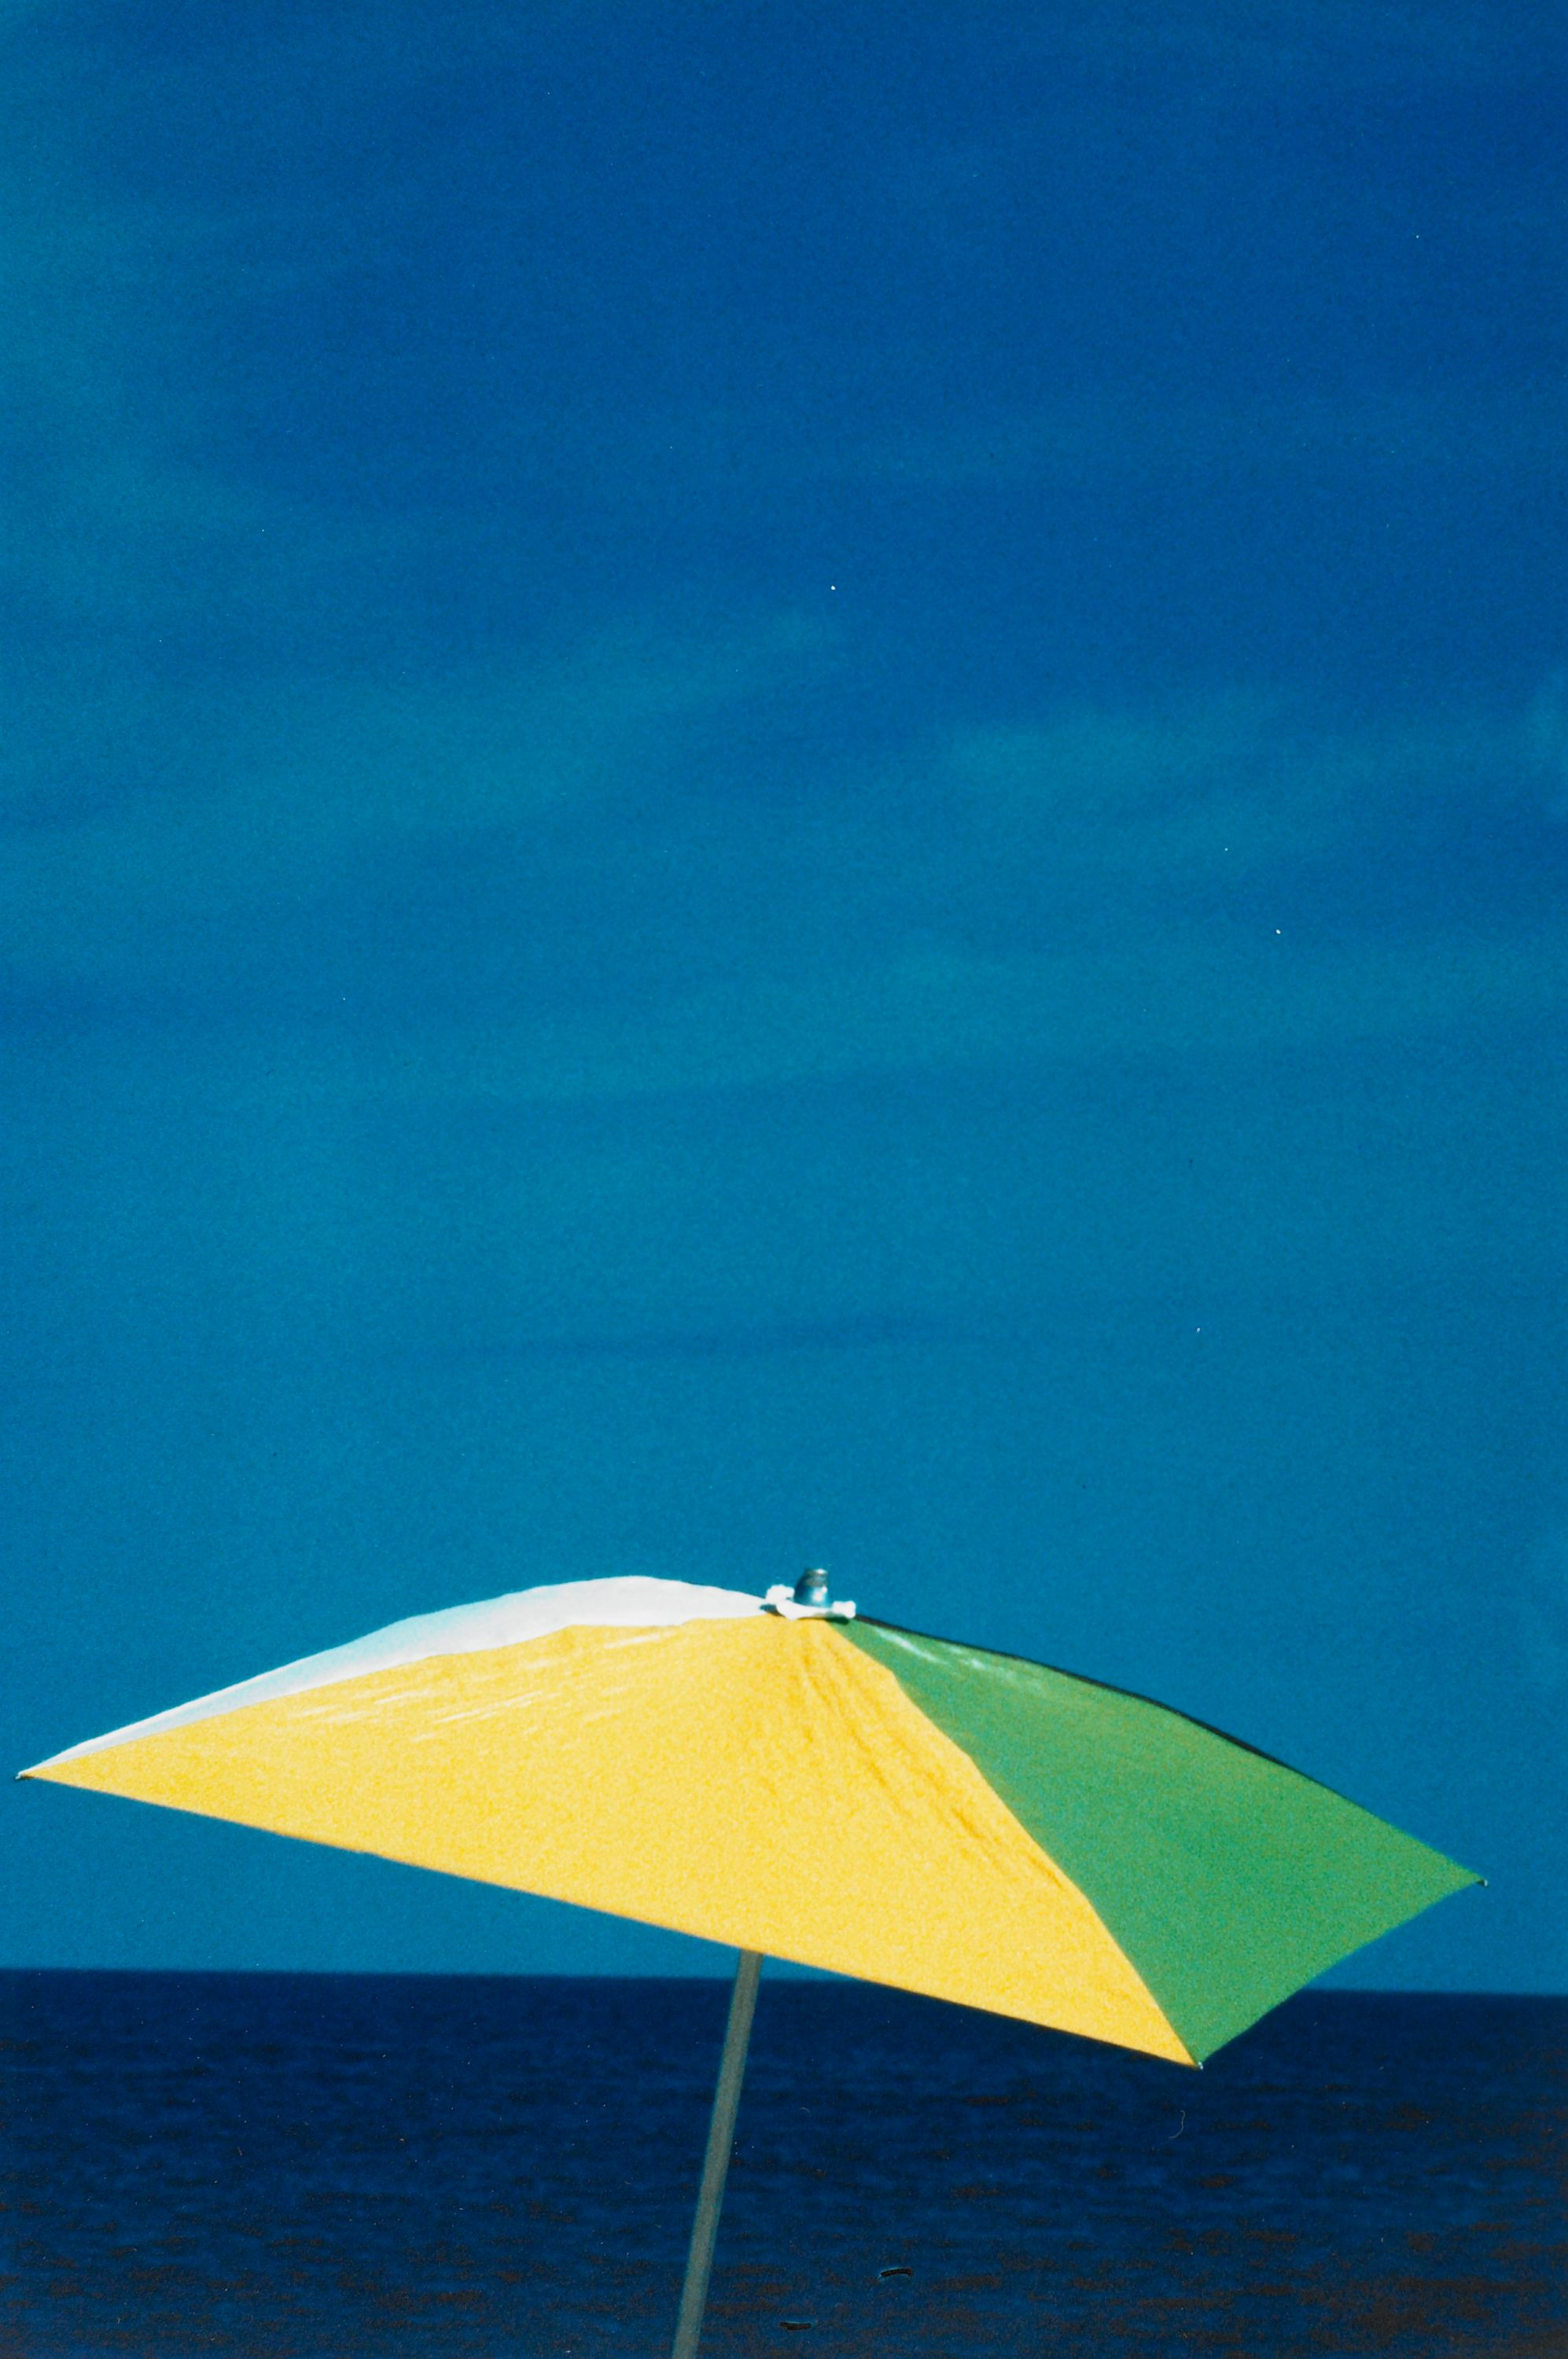 """Untitled (Umbrella on Beach) East Hampton"" Ralph Gibson, United States, born 1939. Type C color print. BMA Collection 1989.212.1."